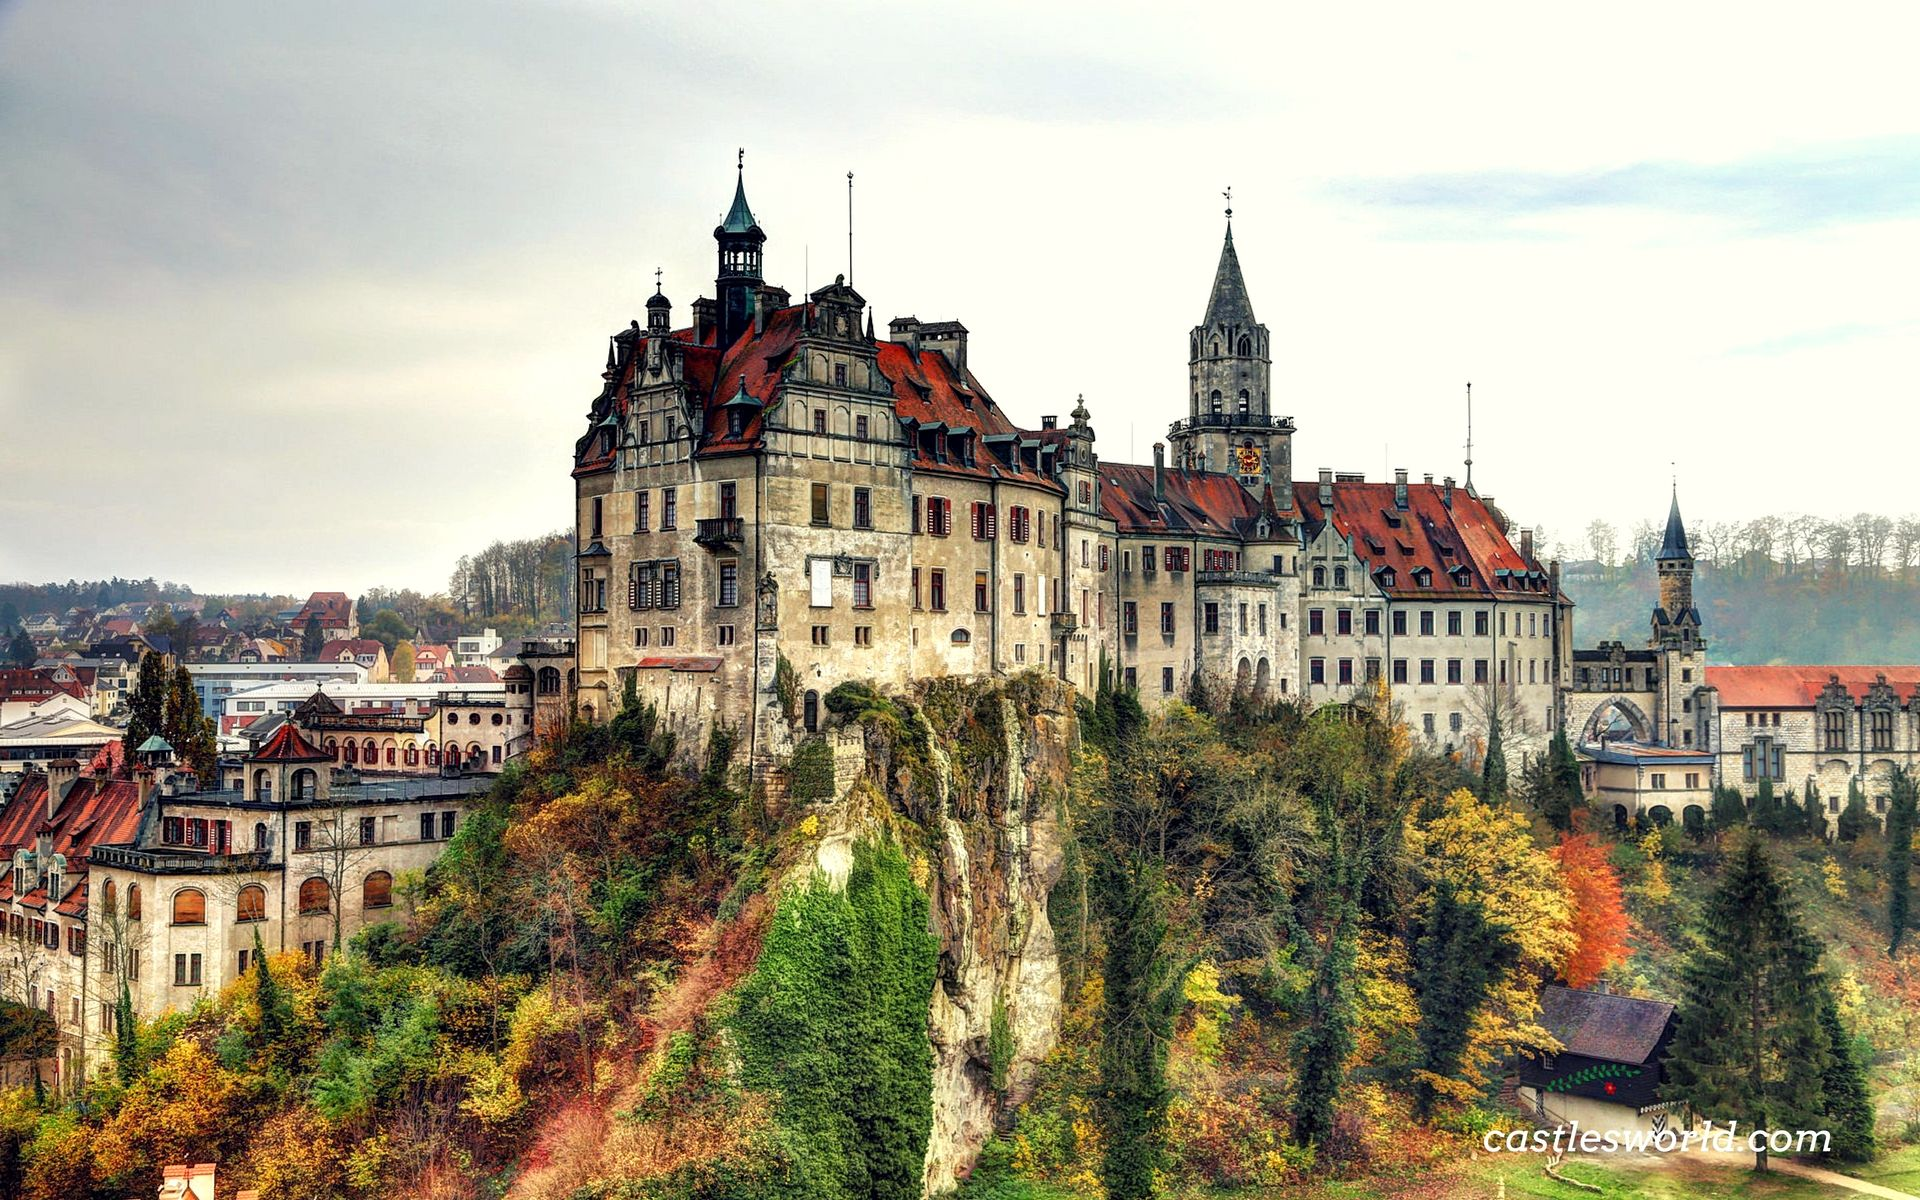 Sigmaringen Castle Germany The Princely Castle And Seat Of Government For The Princes Of Hohenzollern Sigmaringen Beautiful Castles Castle Castle On The Hill